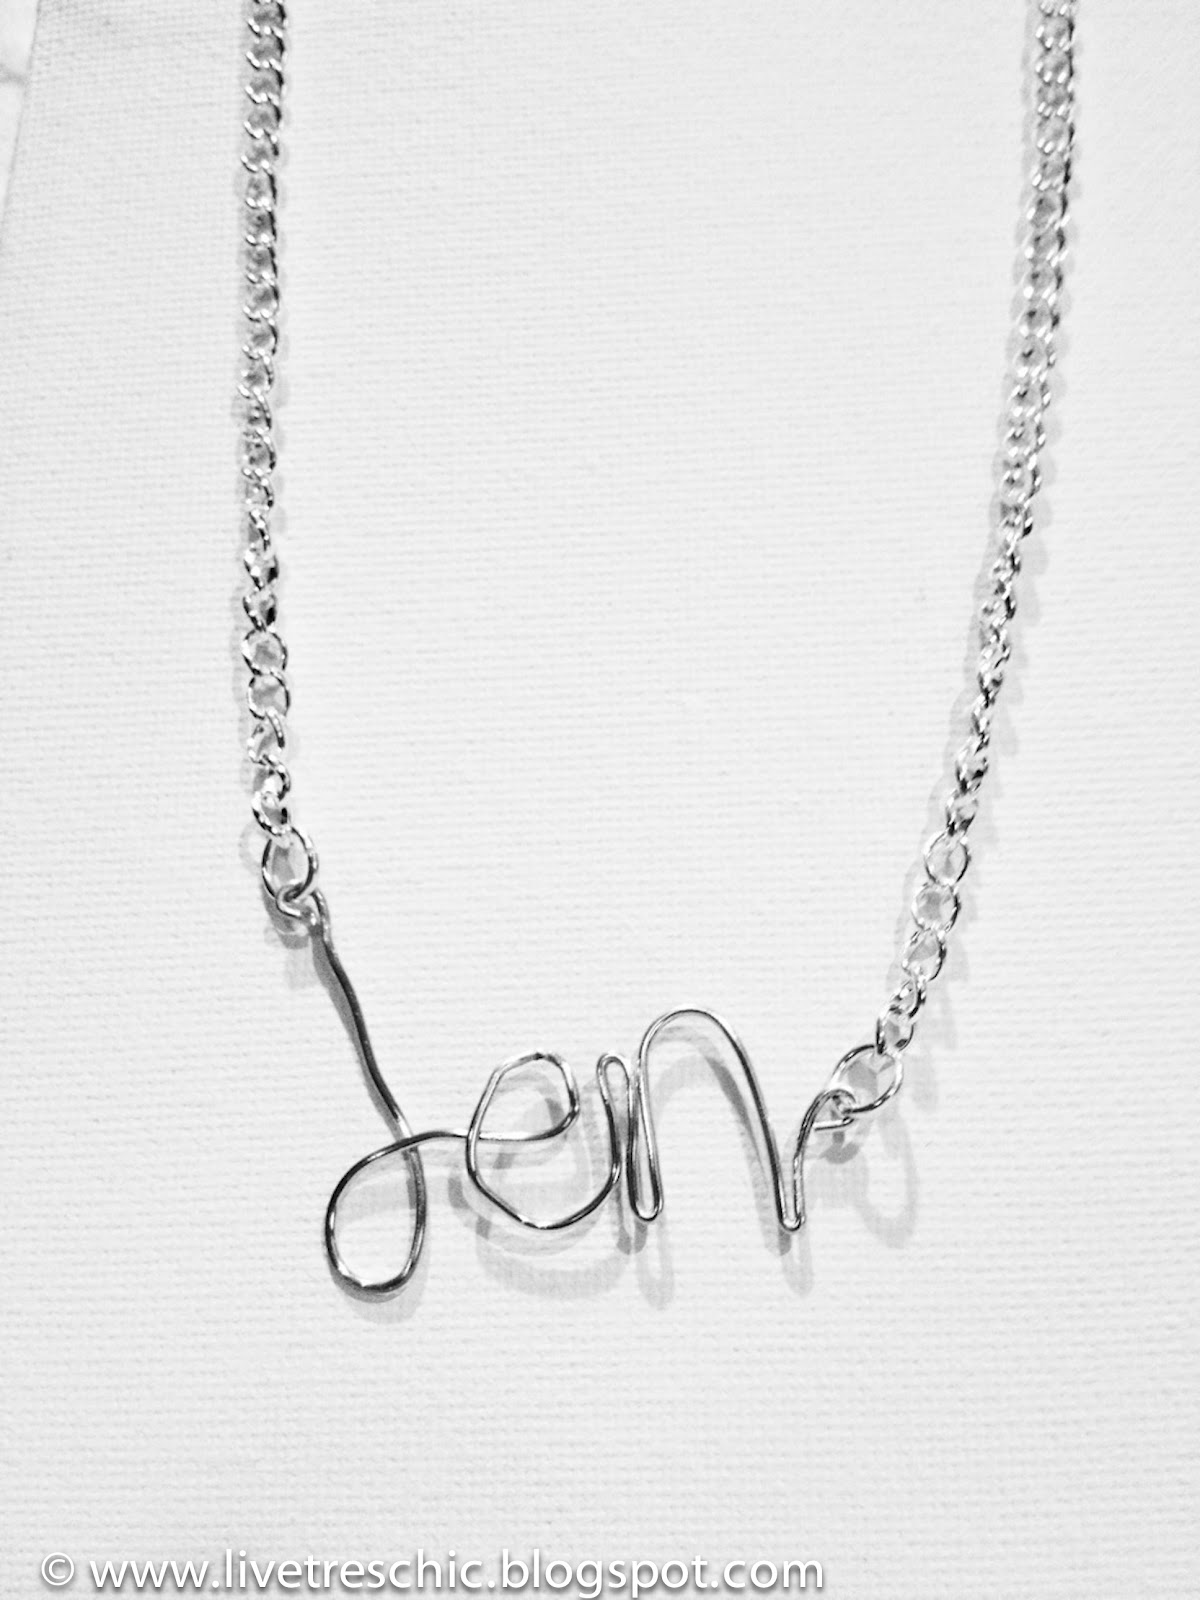 Diy Name Necklace Inspired By Elim Jewelry